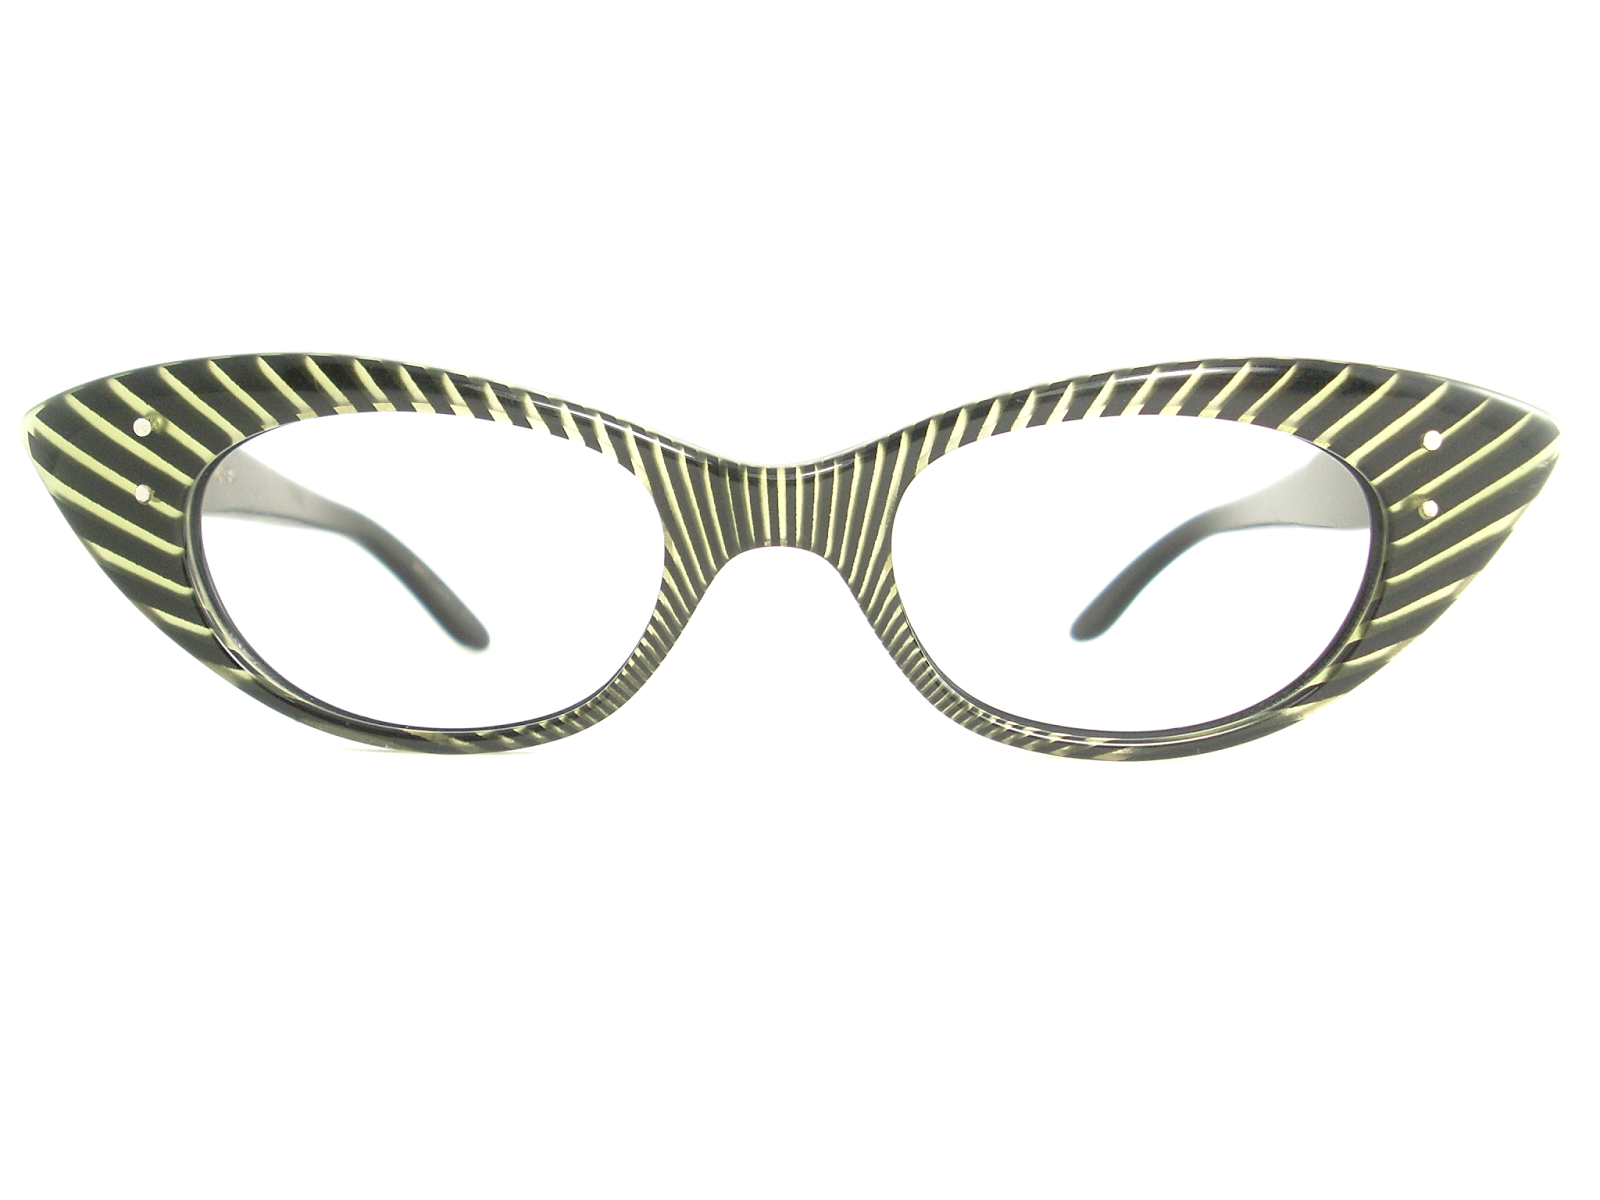 e6f19199bf7 VINTAGE CAT EYE GLASSES FRAME SUNGLASSES. BASE COLOR IS BLACK THEN SHINY  GOLD AND CRYSTAL GIVING A 3D AFFECT. THE ARMS ARE BLACK AND SILVER ALSO  HAVE ...